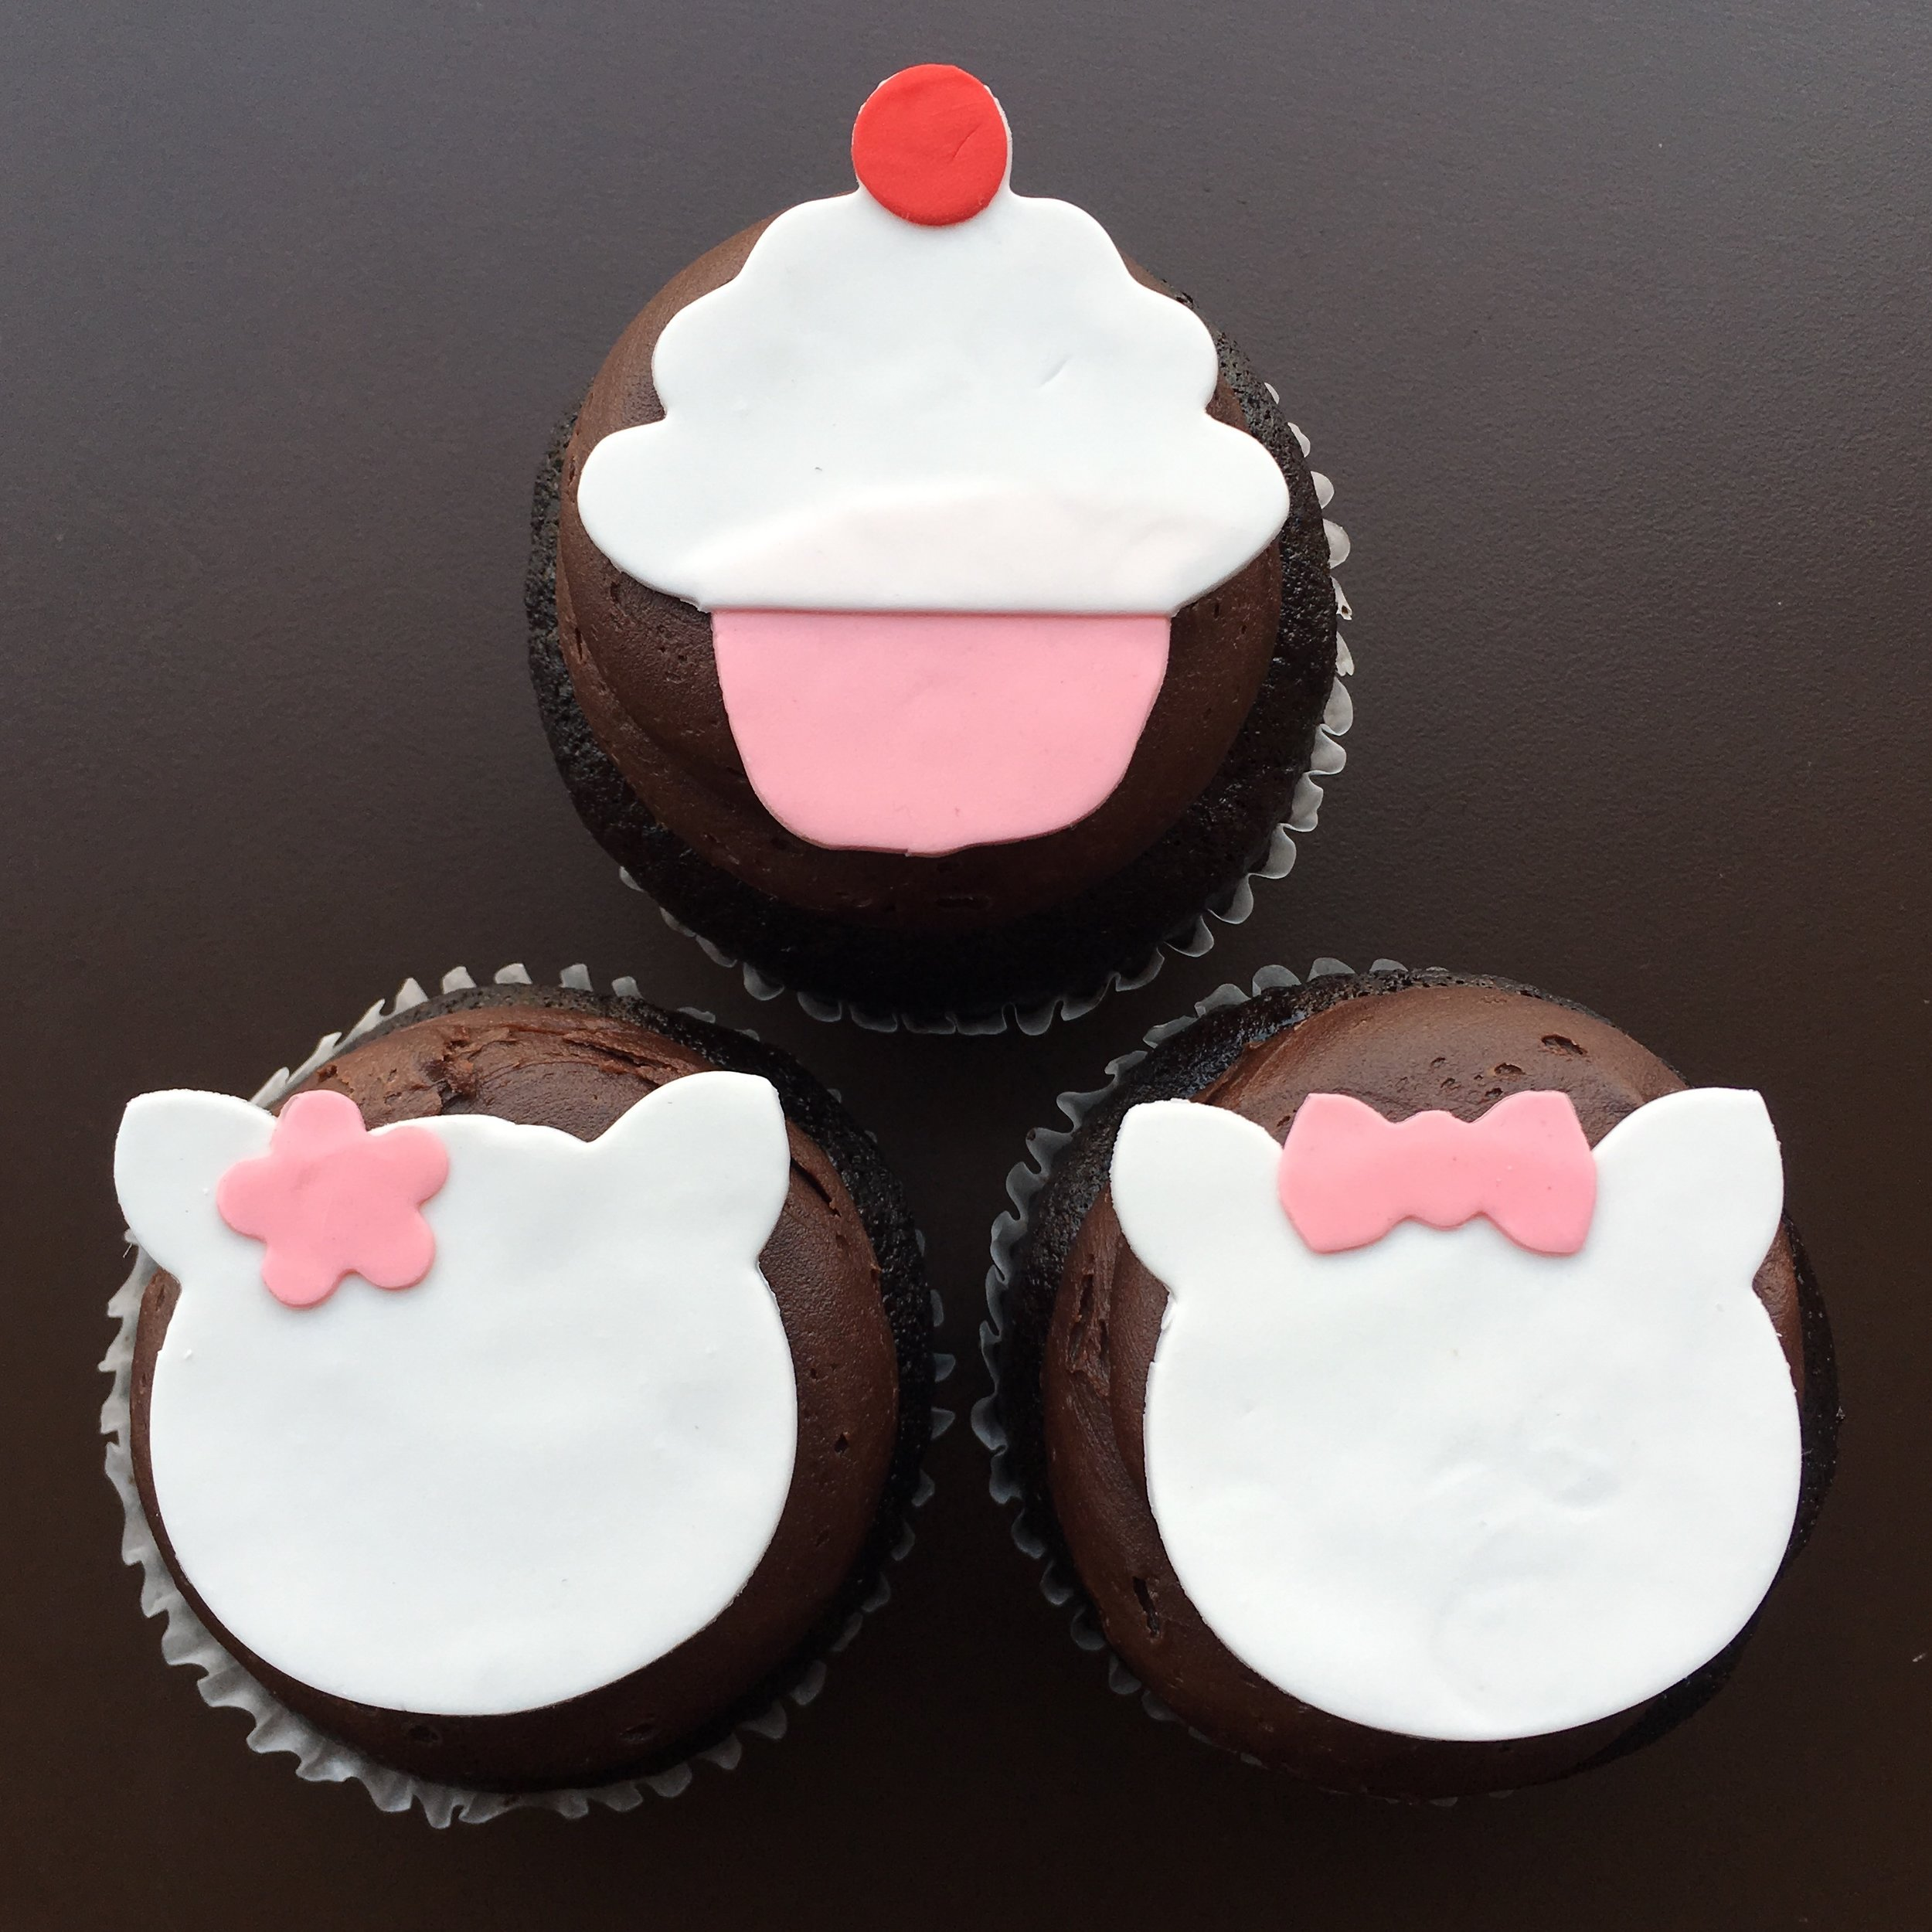 stf-cupcake-kitty2.jpg